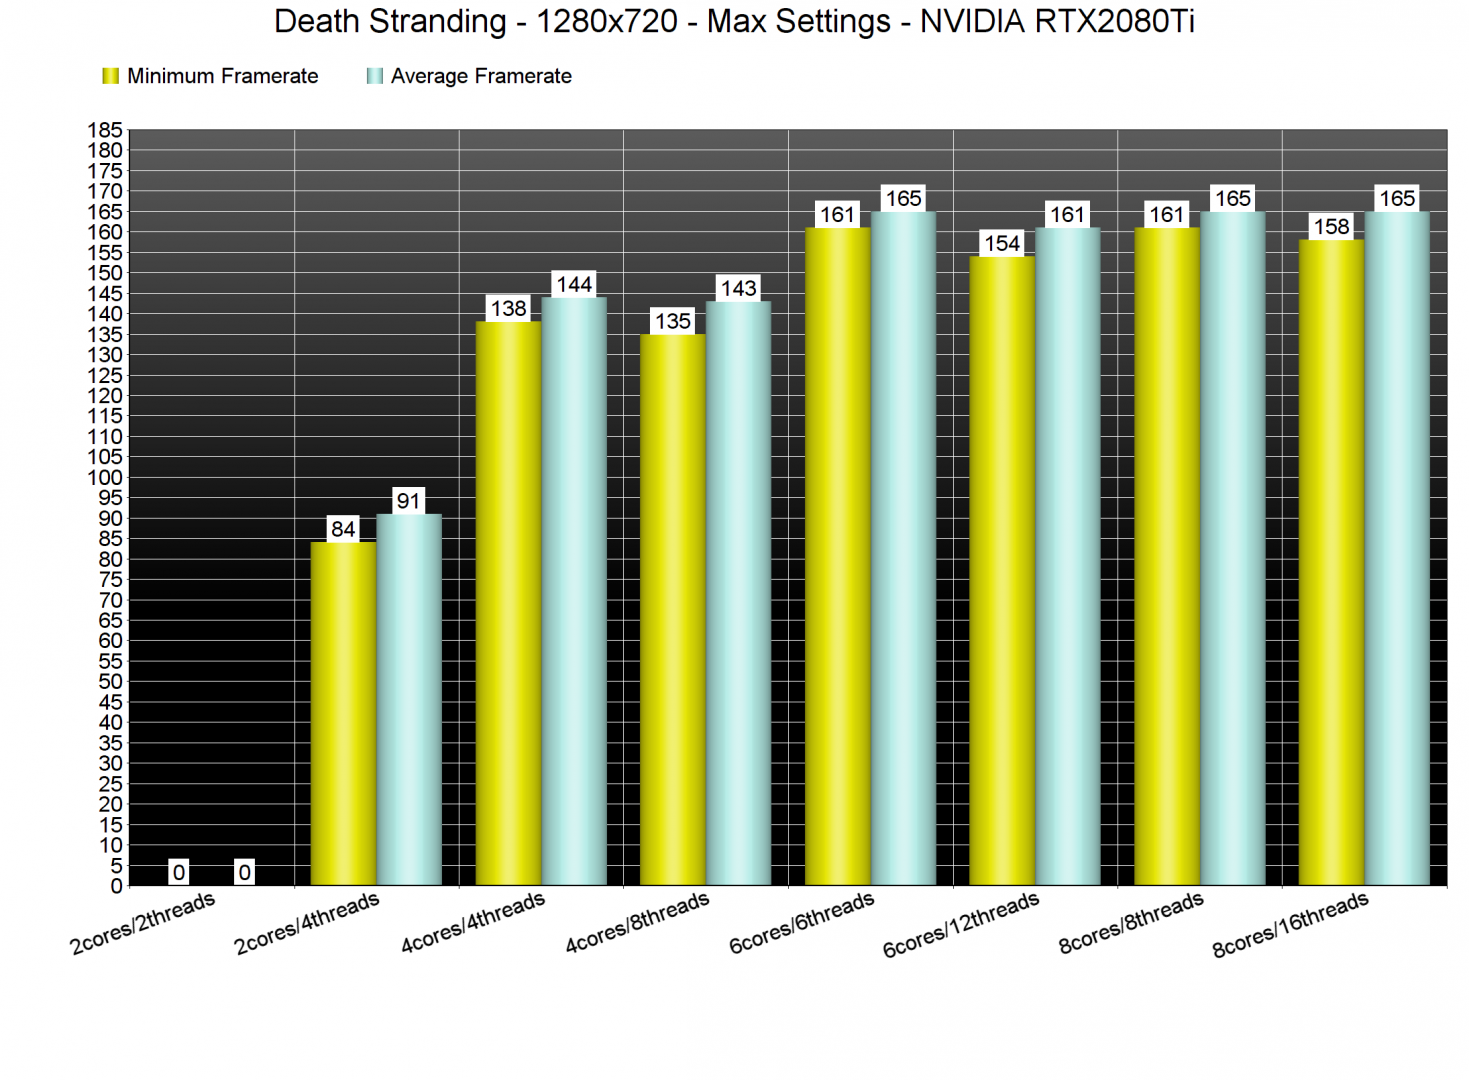 Death Stranding CPU benchmarks